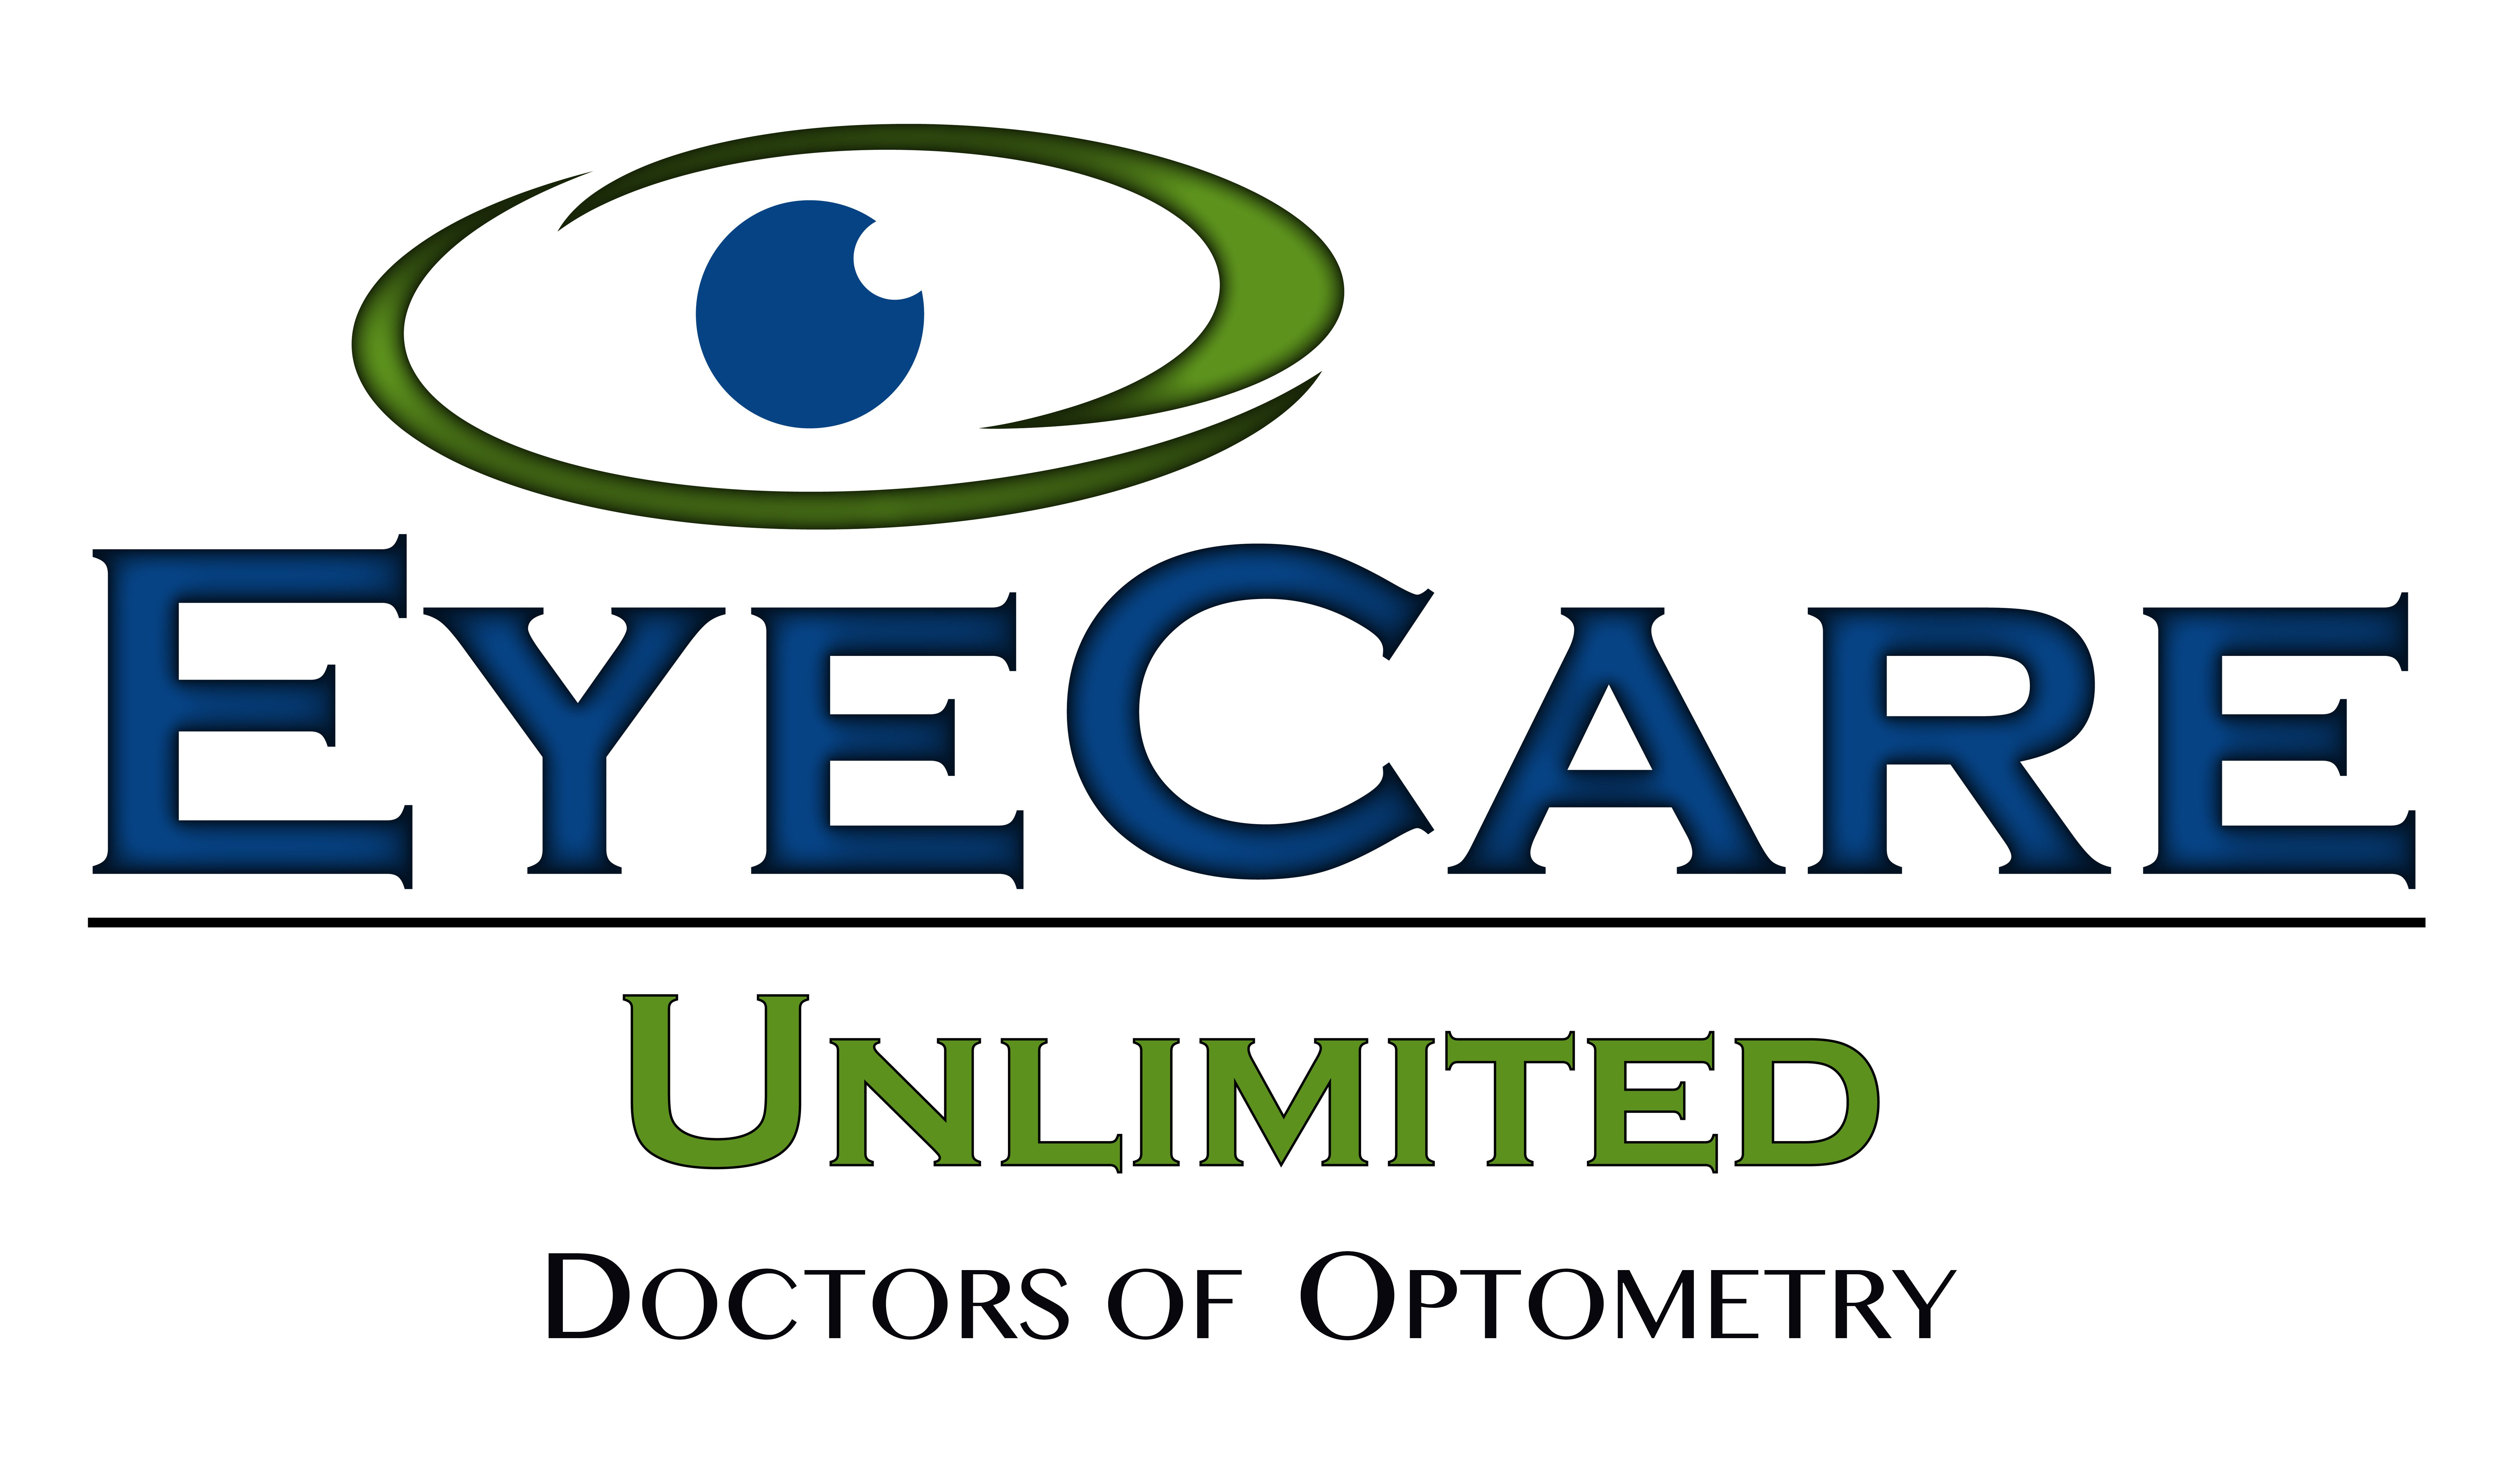 Eyecare Unlimited